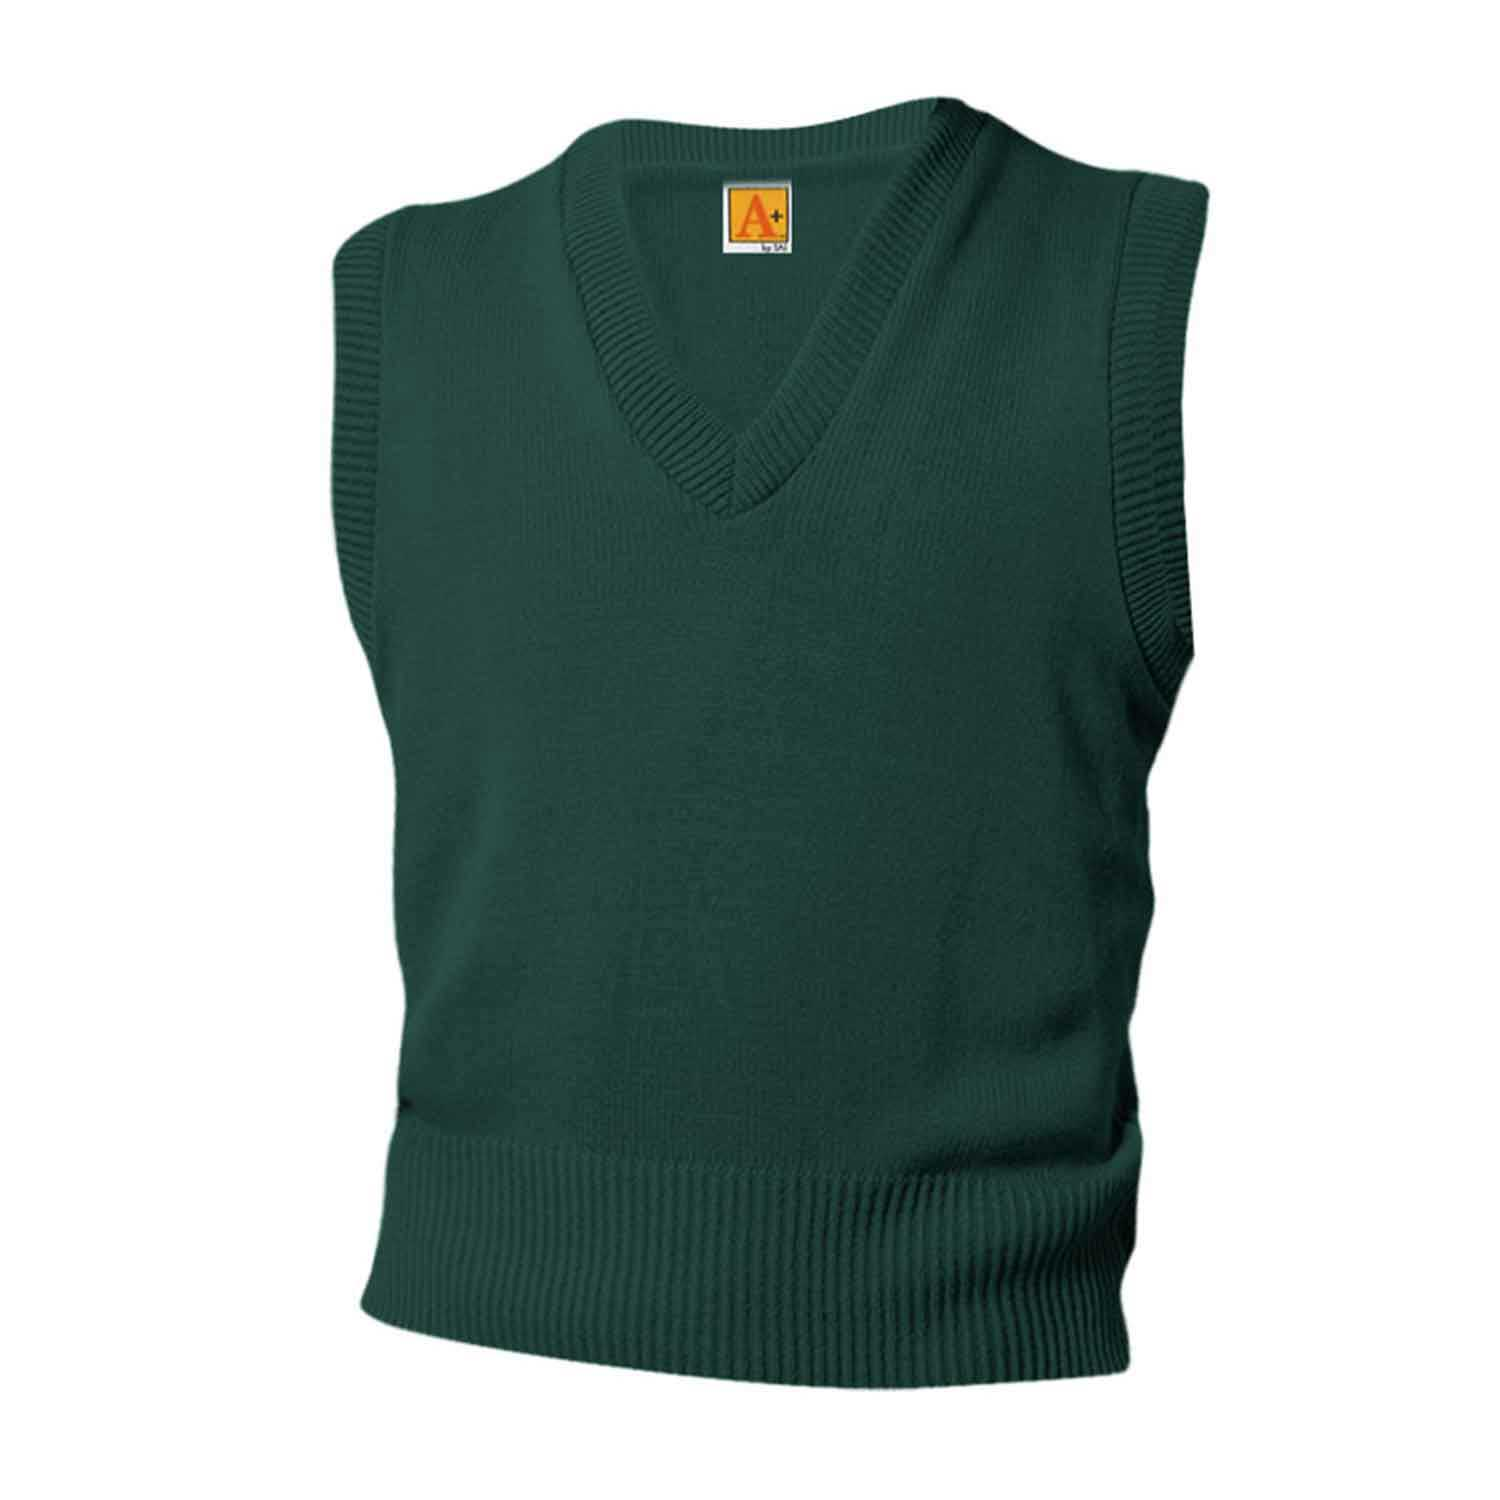 V-Neck Sleeveless Pullover - w/ School Logo - Green